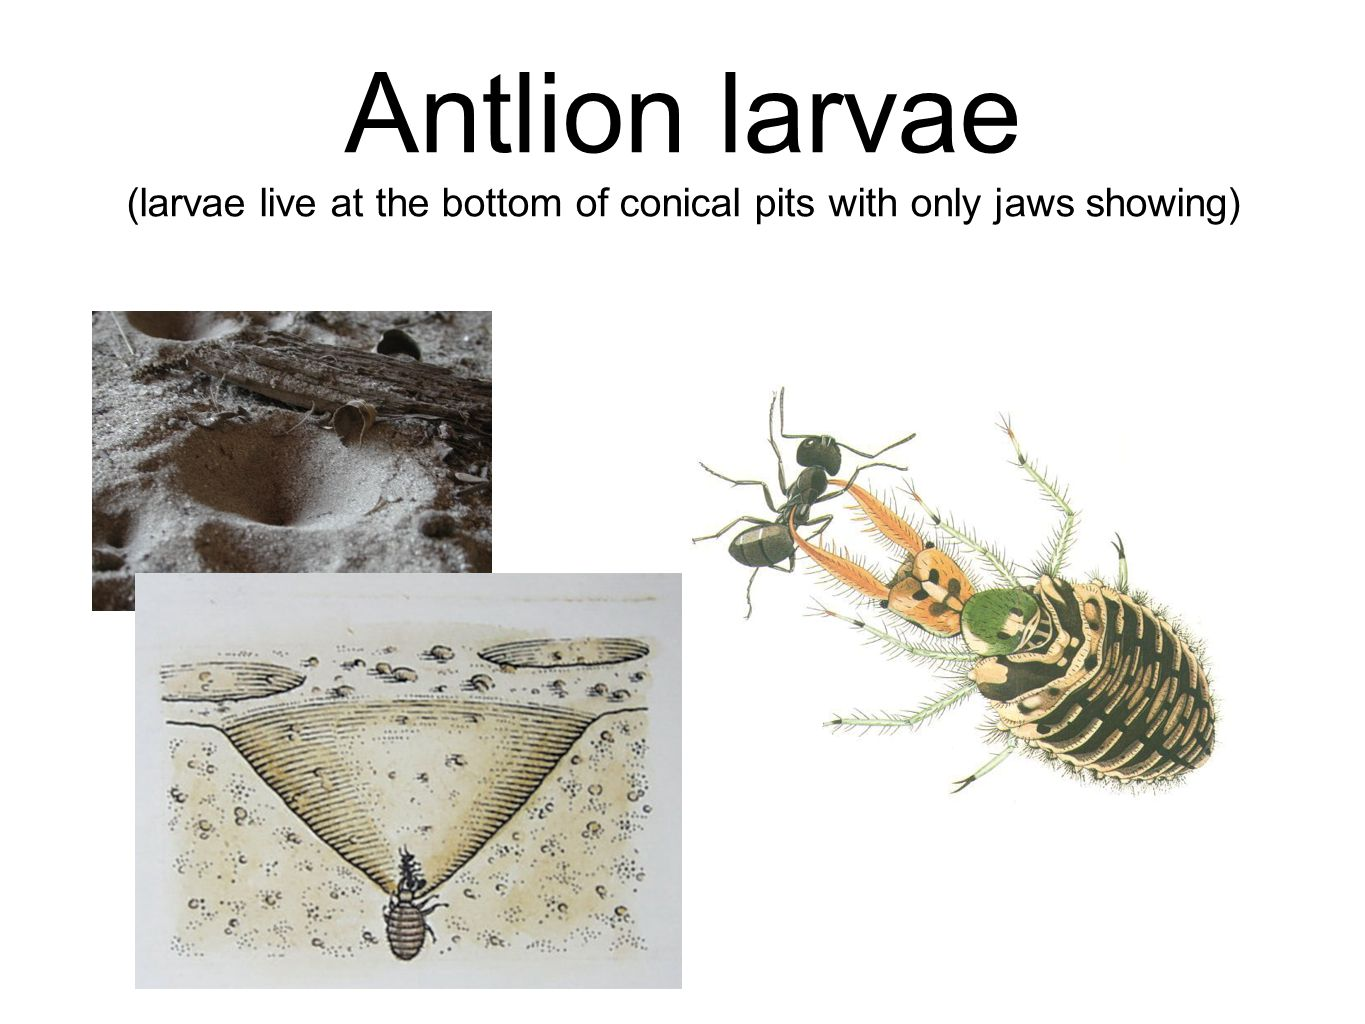 Antlion larvae (larvae live at the bottom of conical pits with only jaws showing)